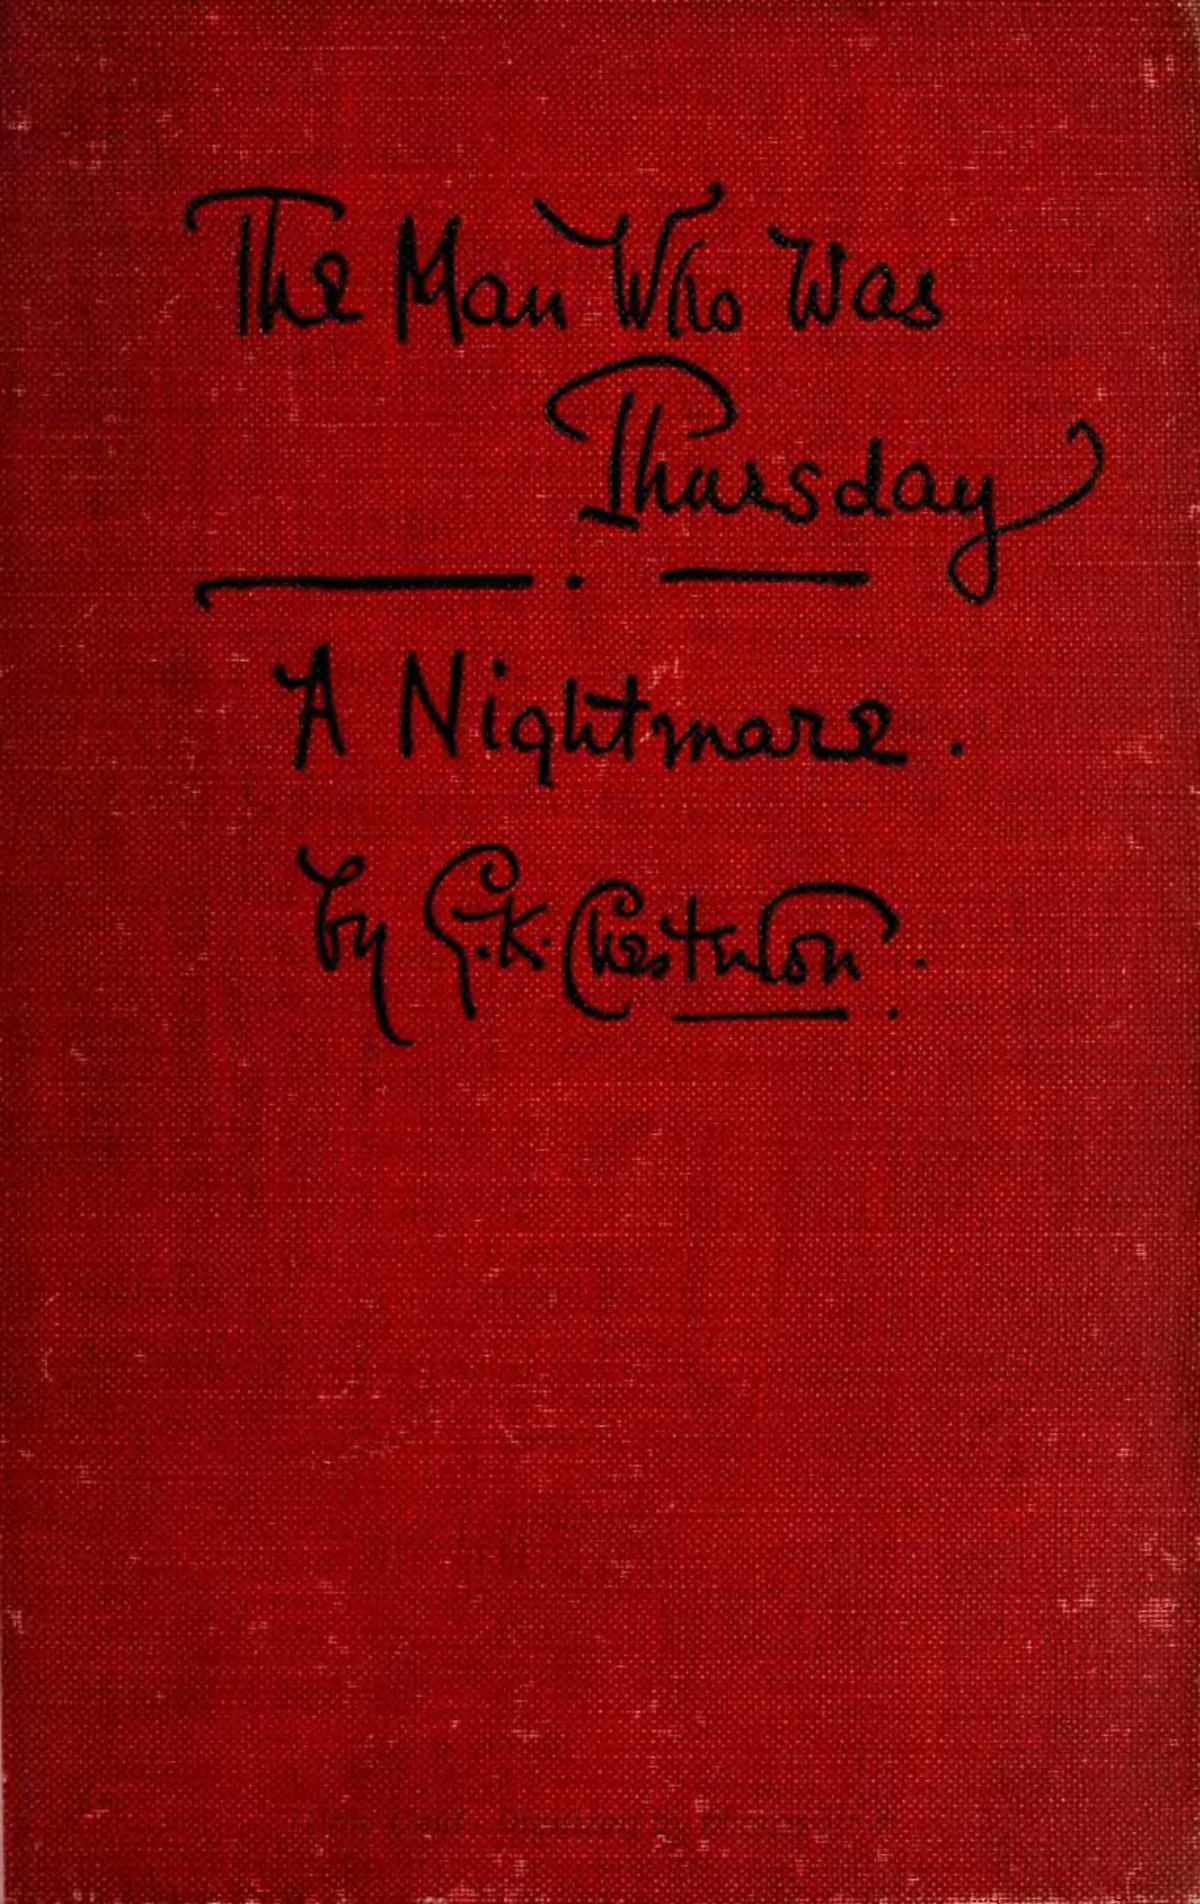 The Man Who Was Thursday Wikipedia I do not own five nights at freddy's or the characters. the man who was thursday wikipedia